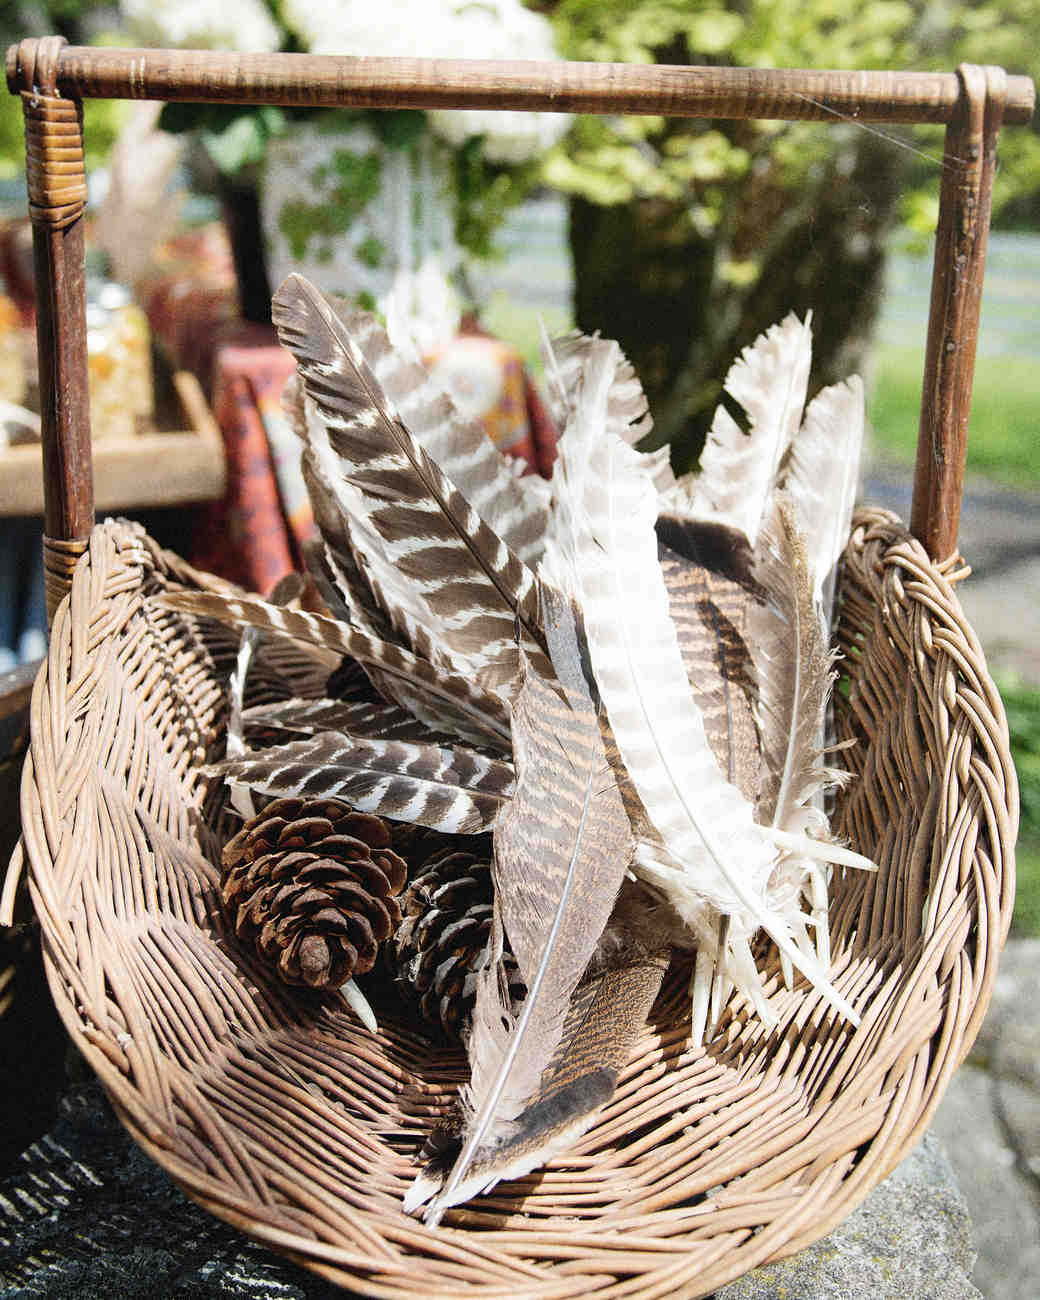 scavenger-hunt-bridal-shower-feathers-decor-0315.jpg